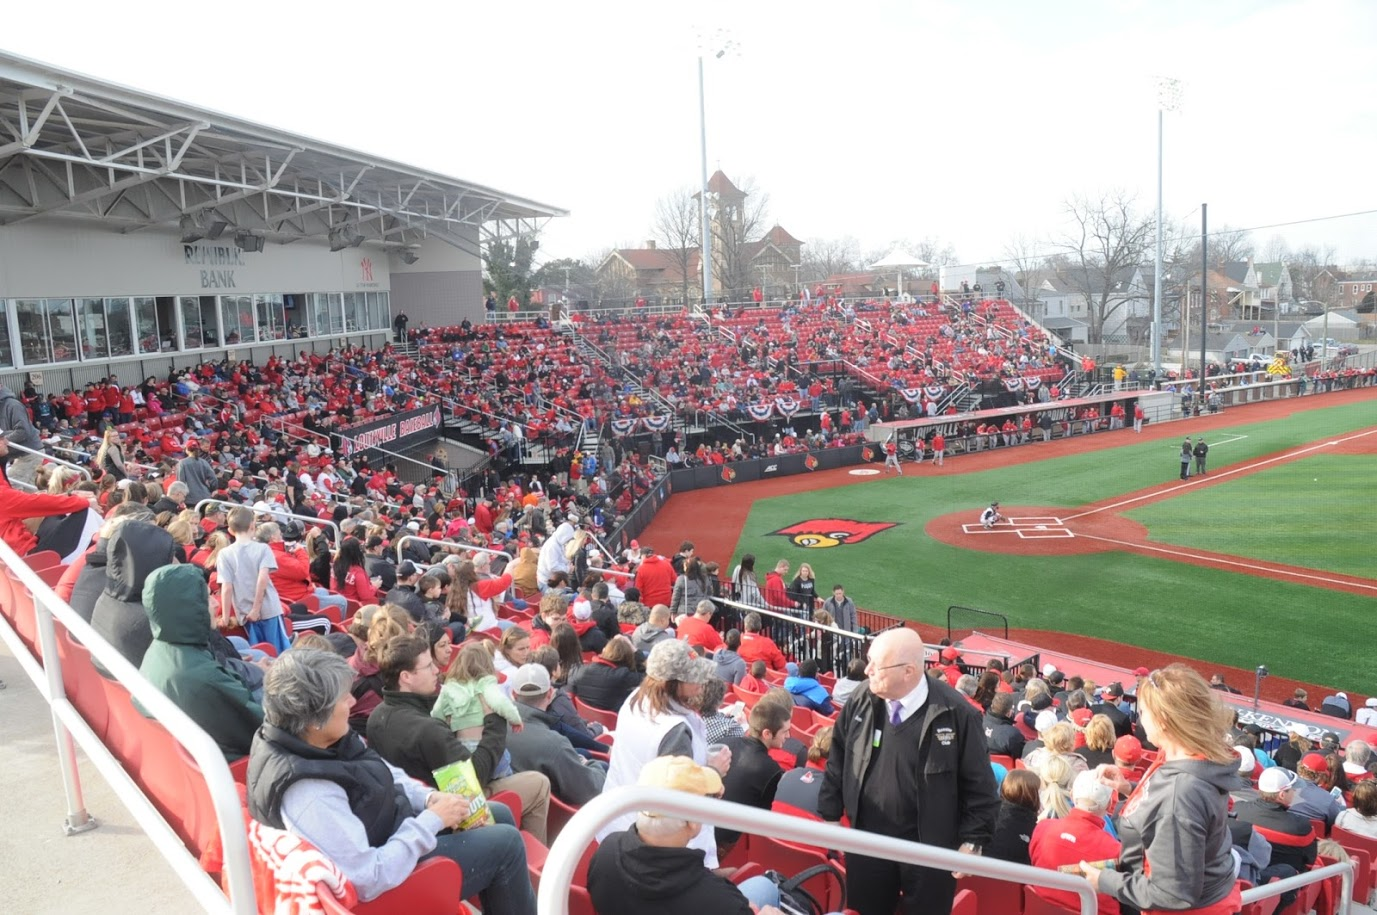 Louisville, Notre Dame reshuffle with doubleheader